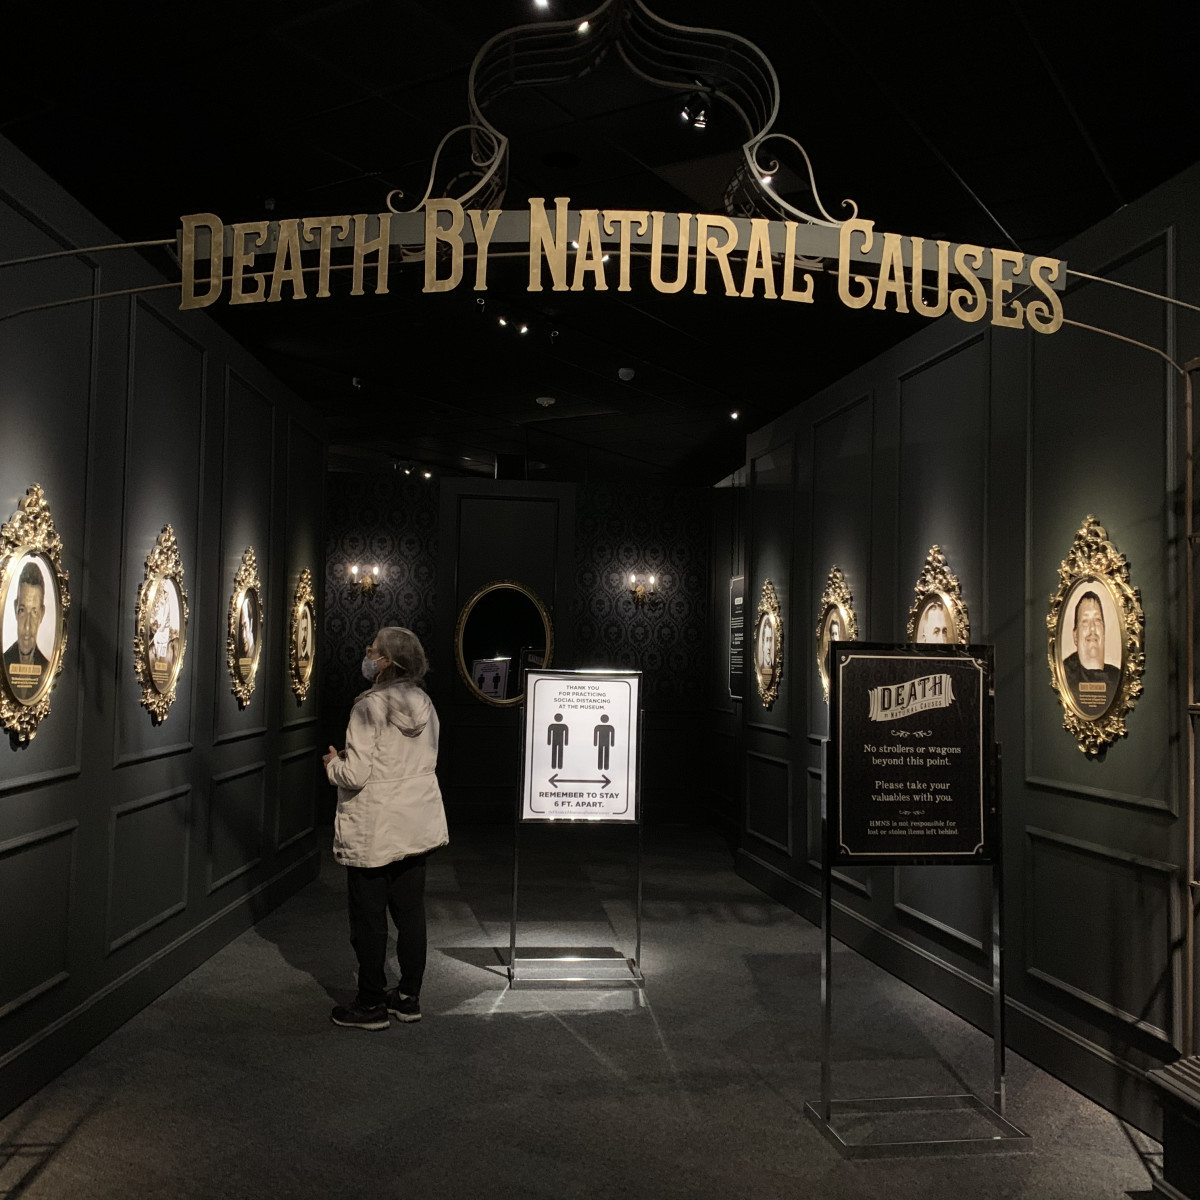 HMNS: Death by Natural Causes